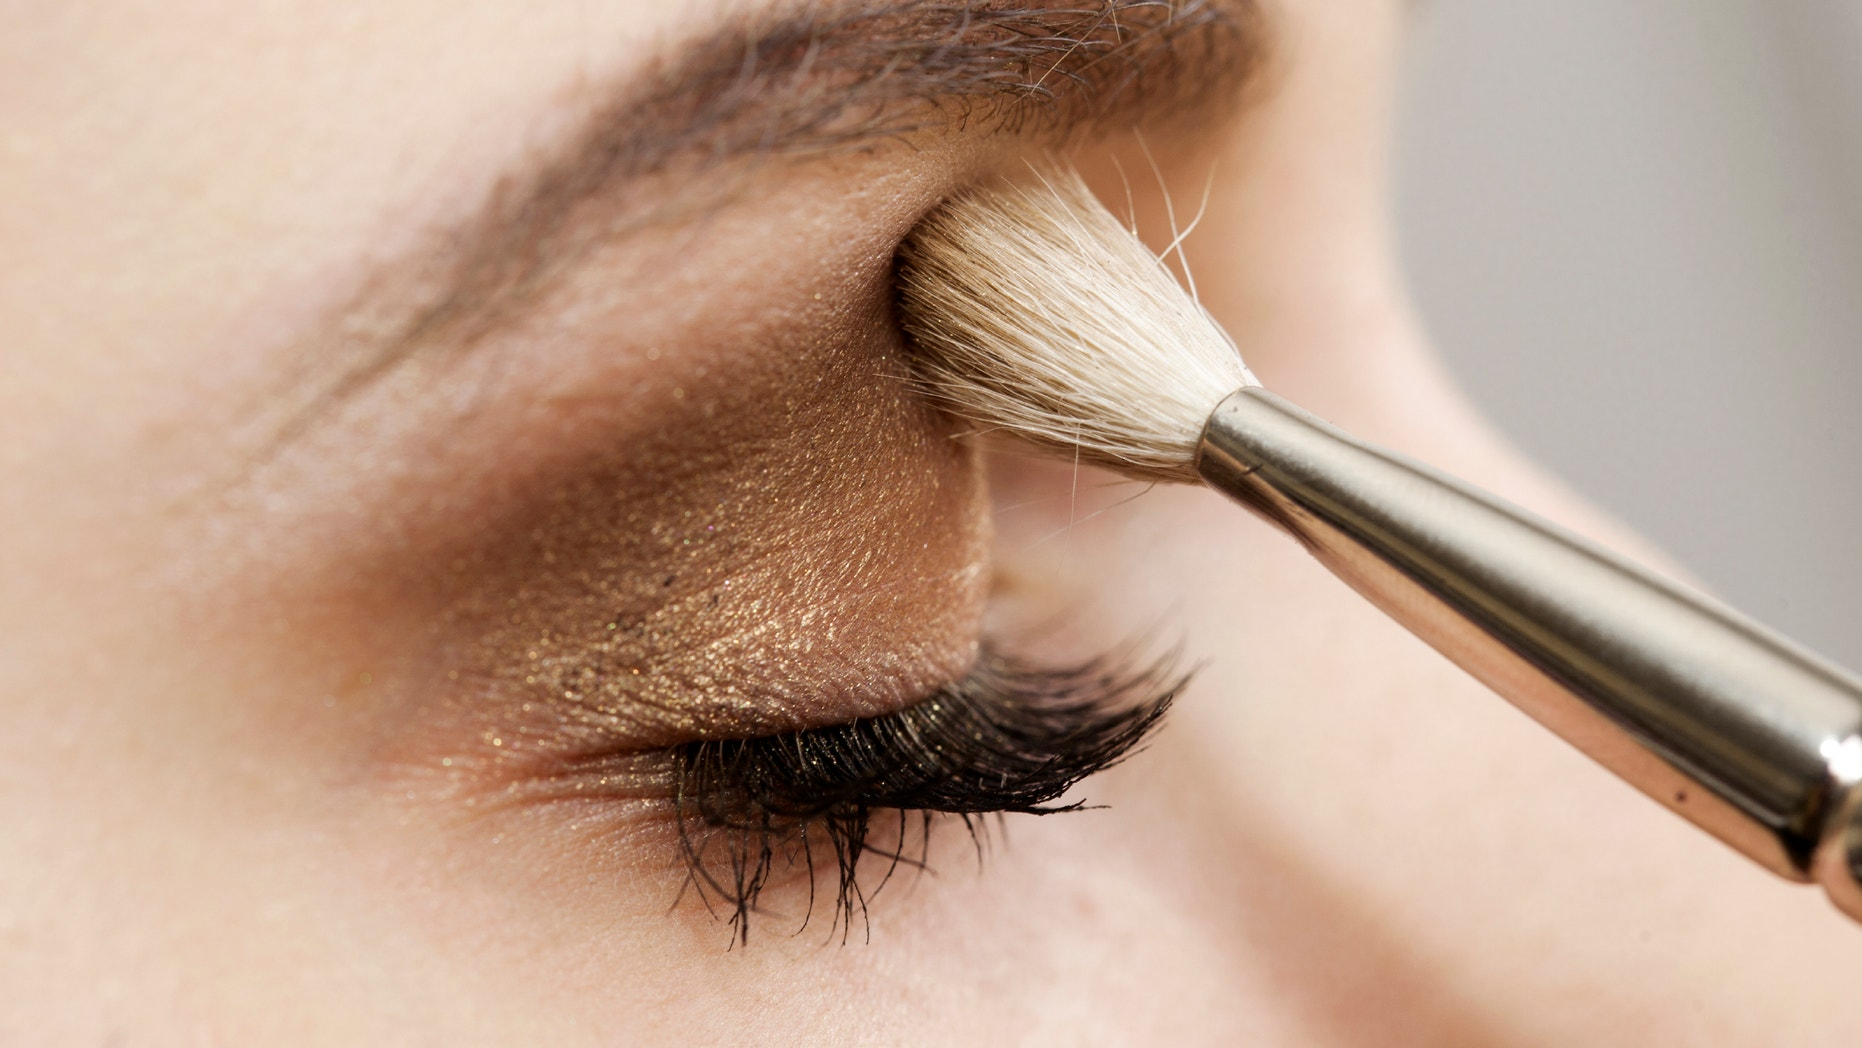 10 toxic chemicals to avoid in eye makeup | Fox News